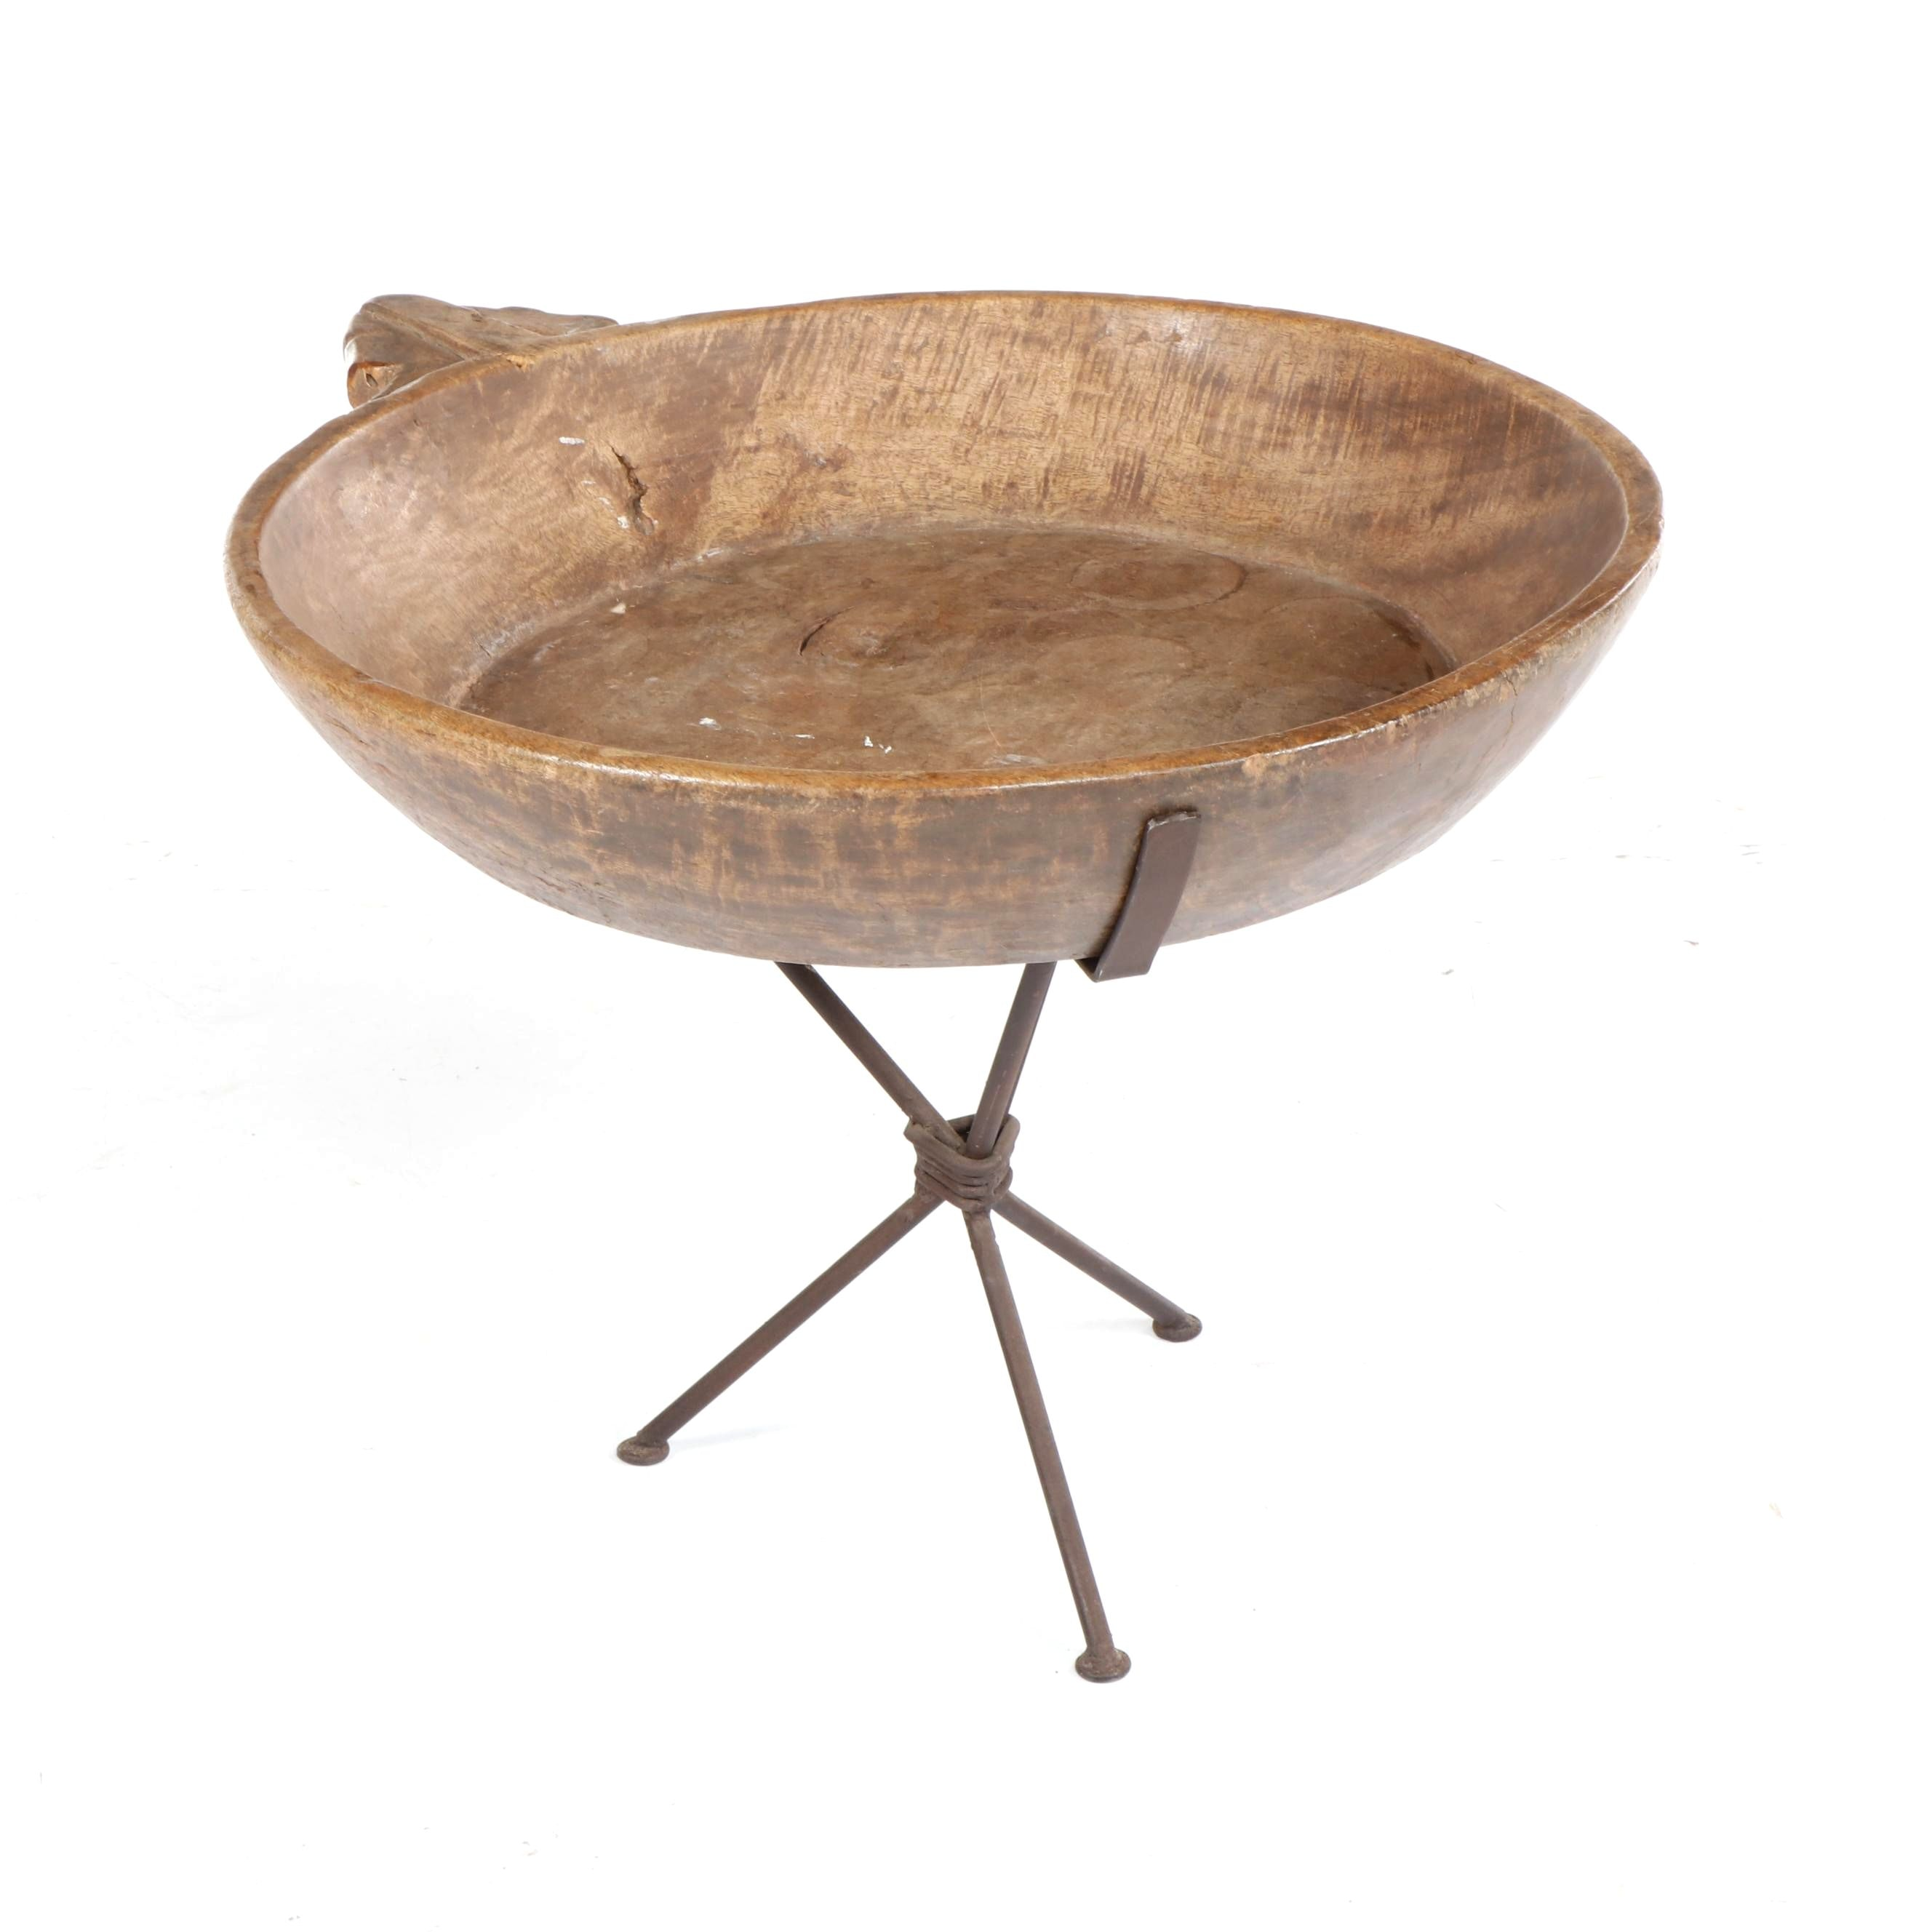 Primitive Wooden Dough Bowl with Iron Stand Accent Table, 19th Century and Later